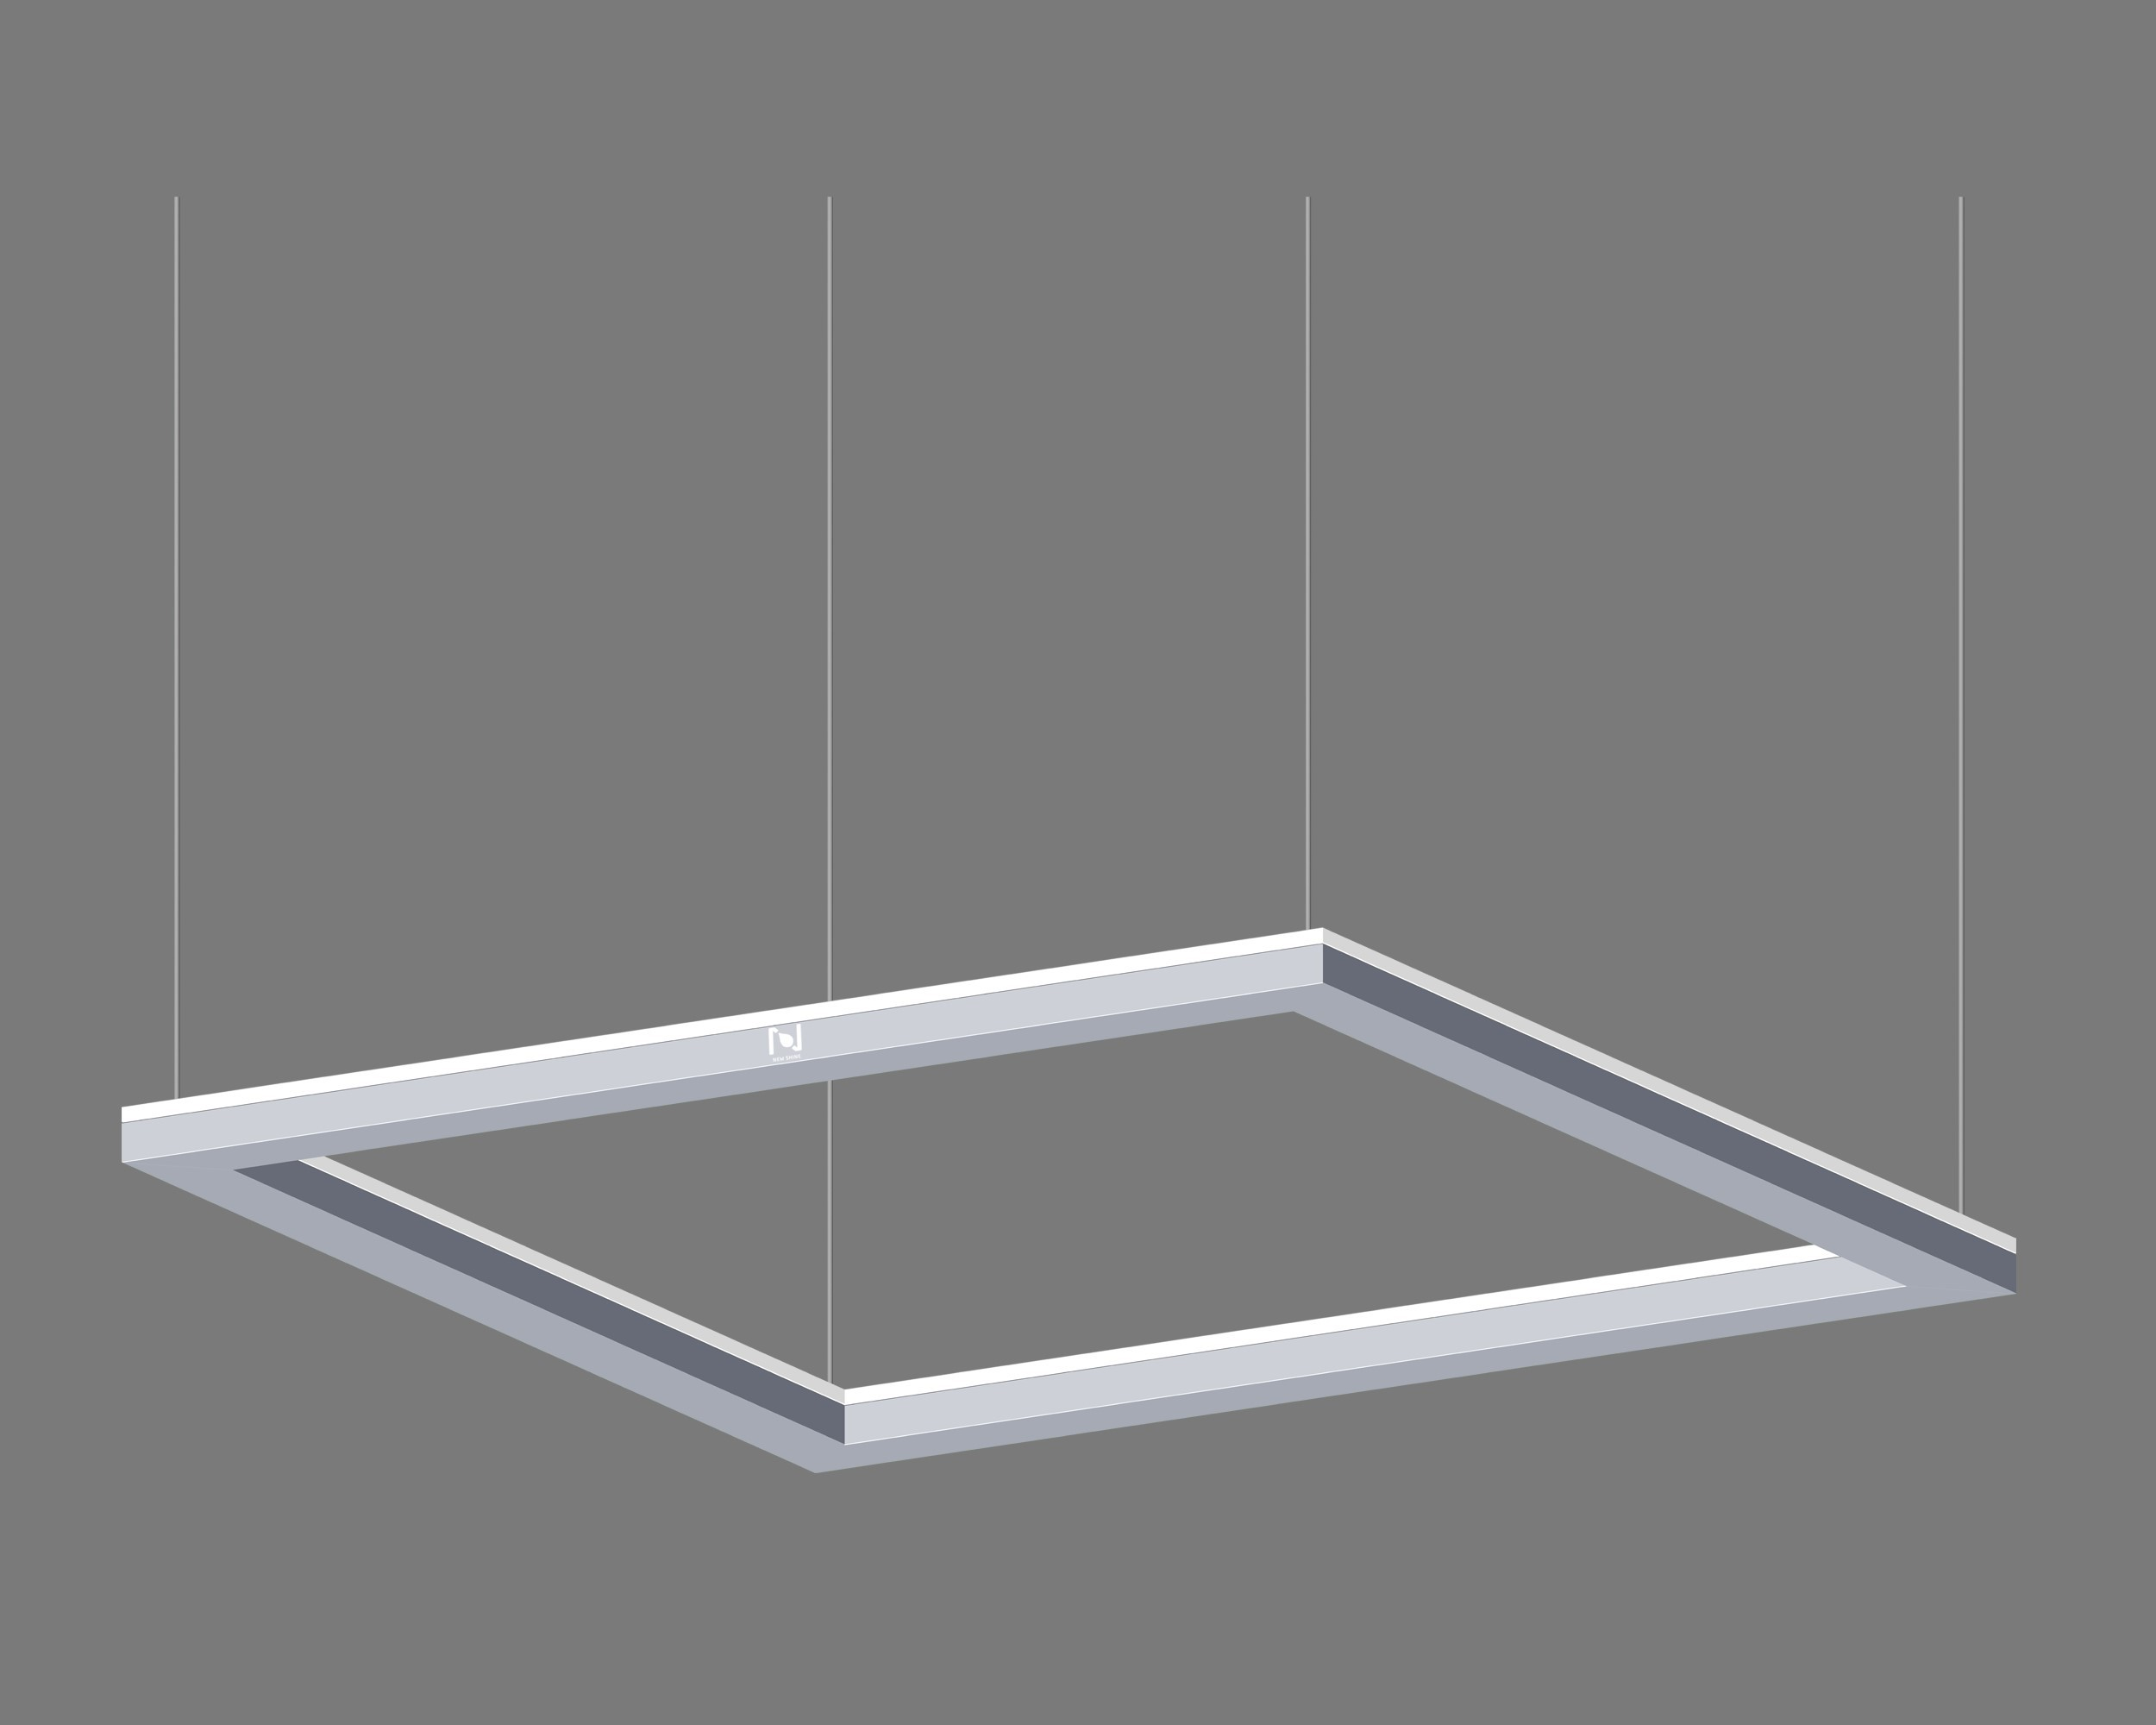 Architectural indirect lit square frame light LL0195S-80W-U